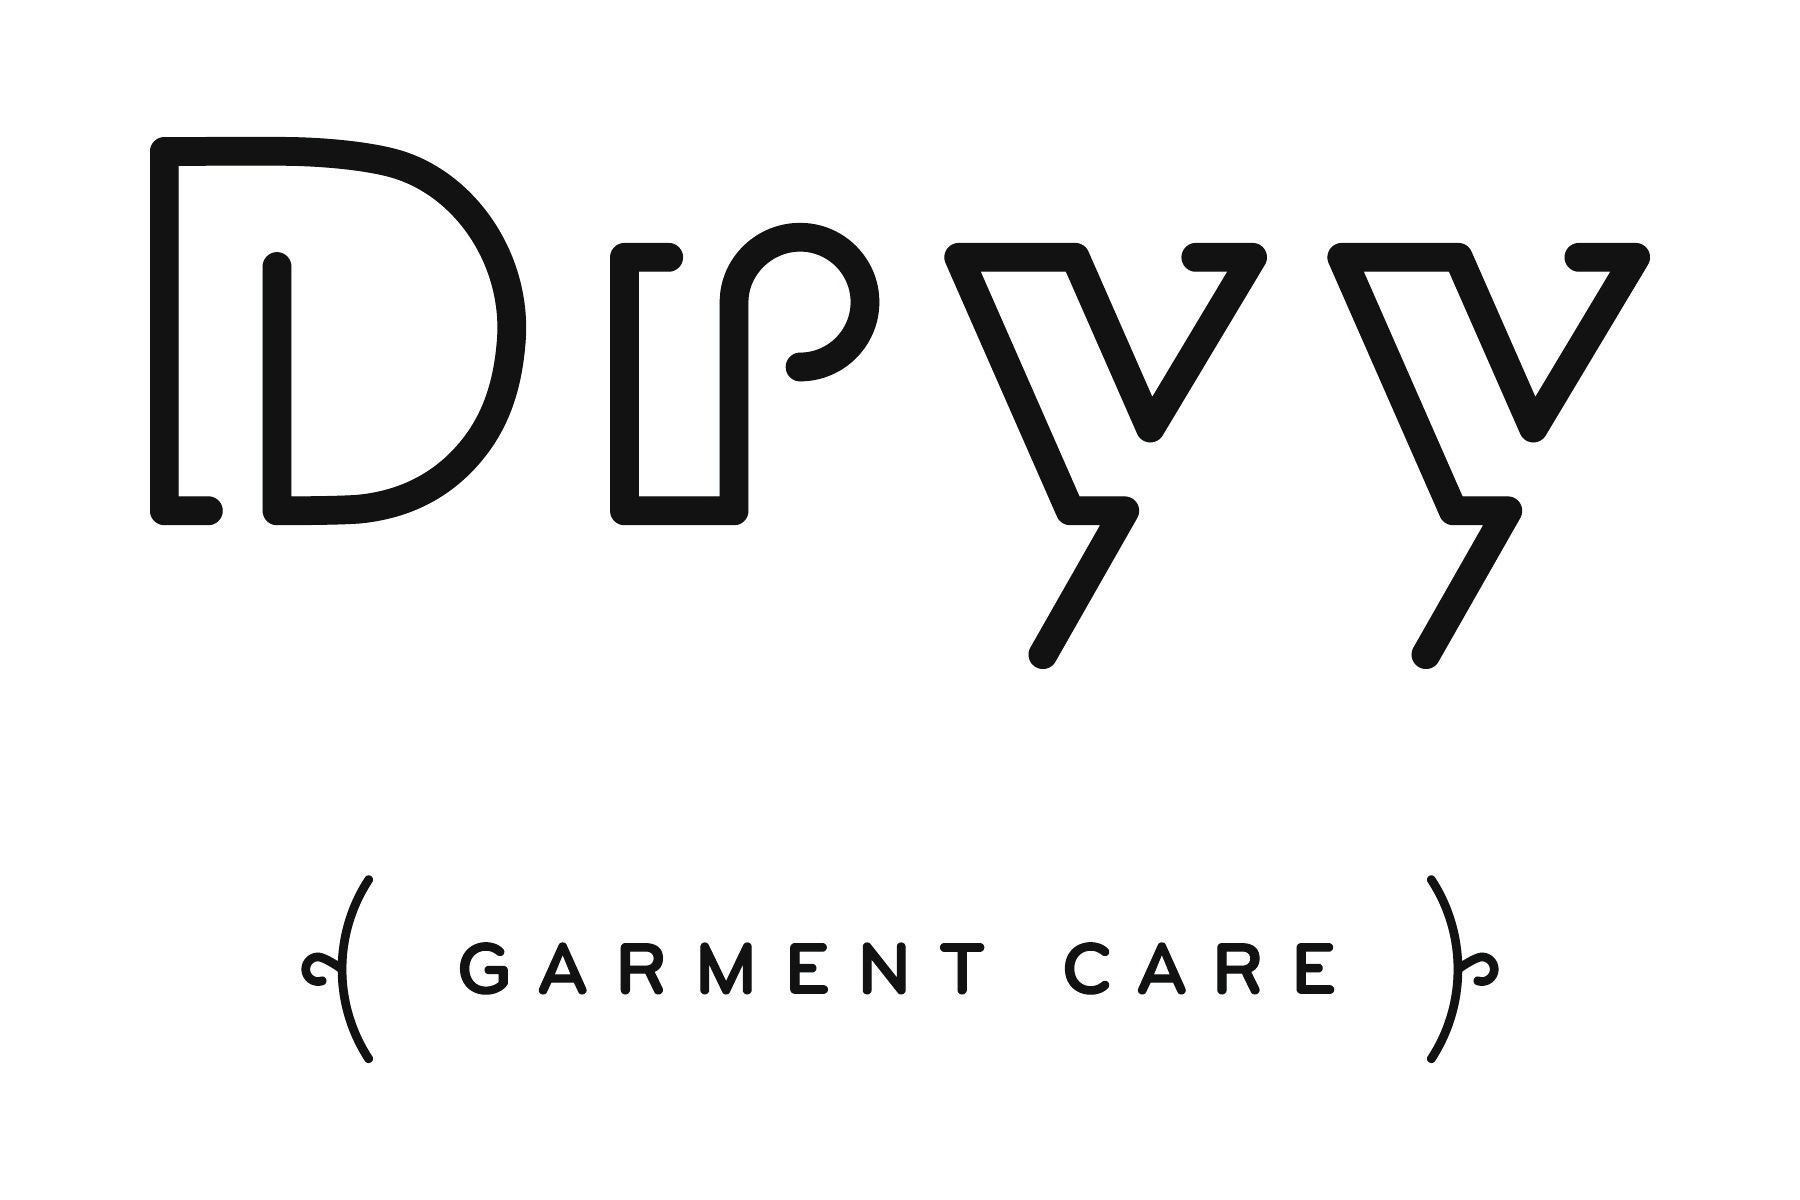 Dry Garment care logo